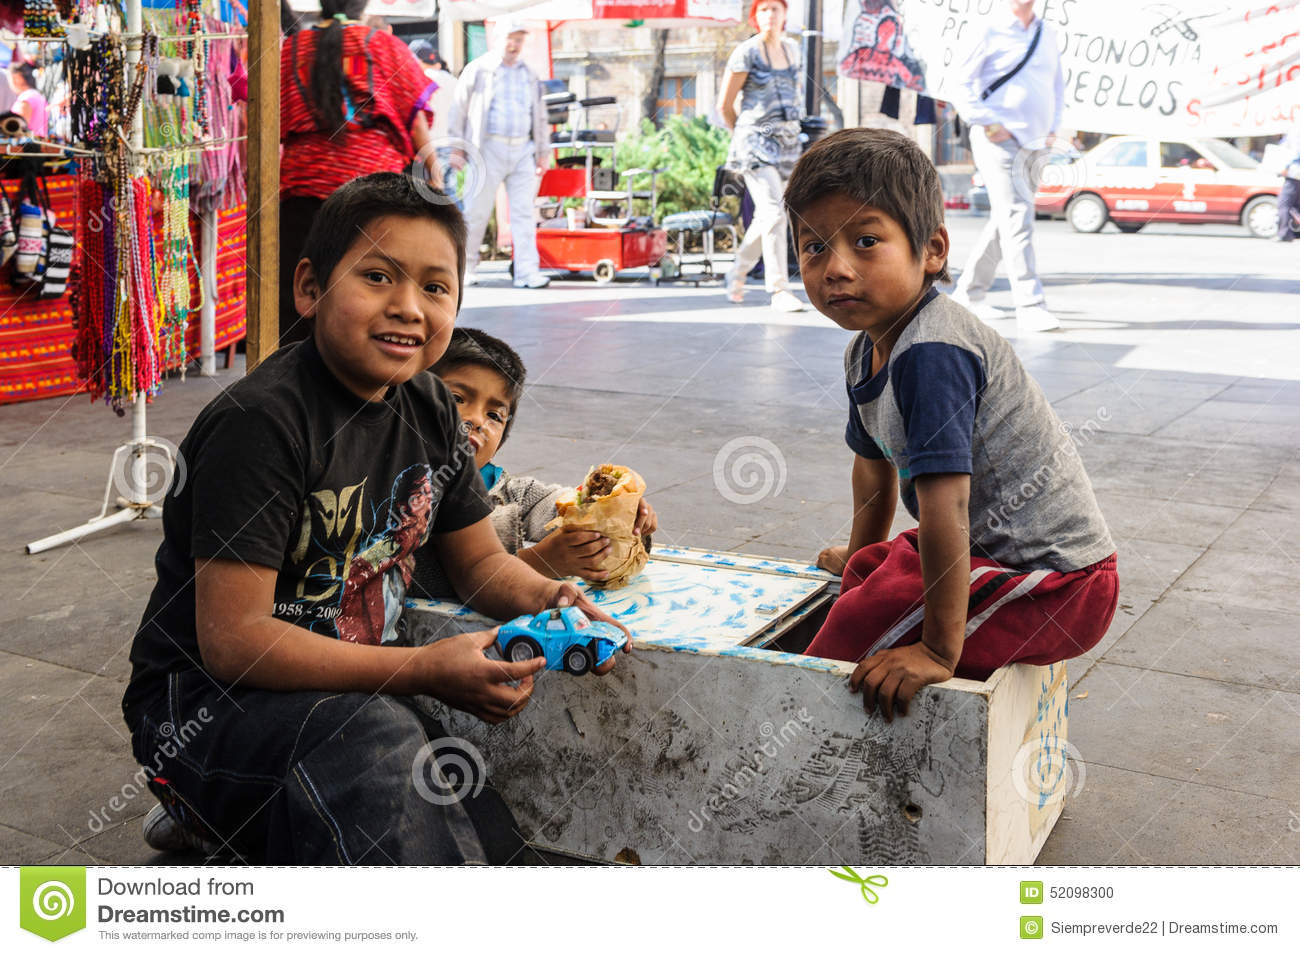 Mexico city mexico dec 29 2011 unidentified mexican children play in the street 60 of mexican people belong to the mestizo ethnic group